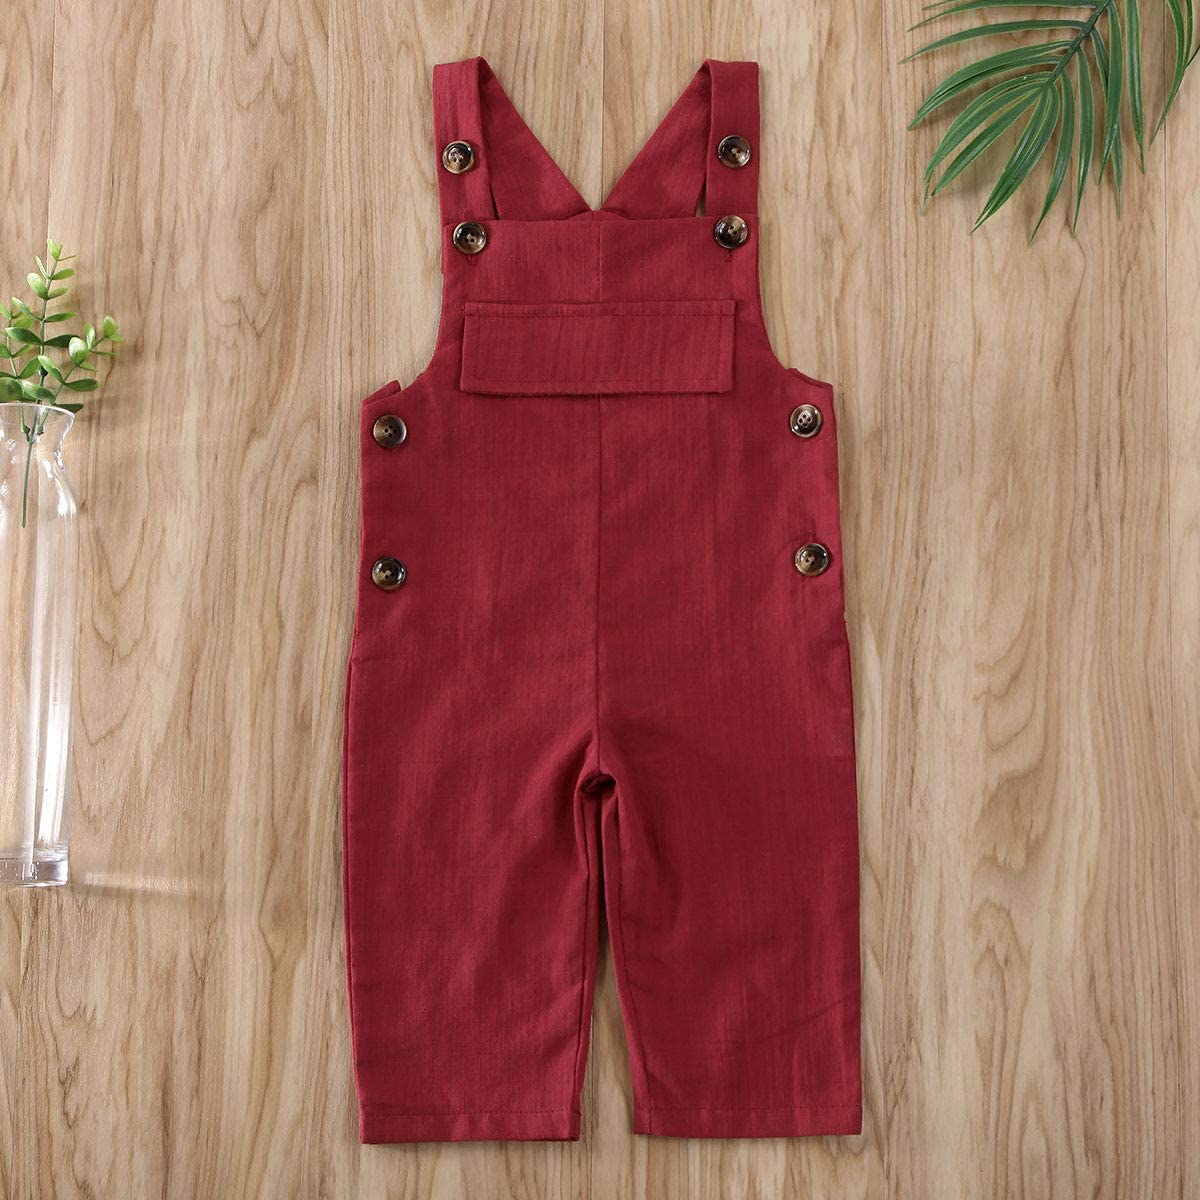 Karuedoo Toddler Baby Girl Overalls Cotton Linen Strap Suspender Pant Solid Jumpsuit Romper Bib Pants One-Piece Outfits